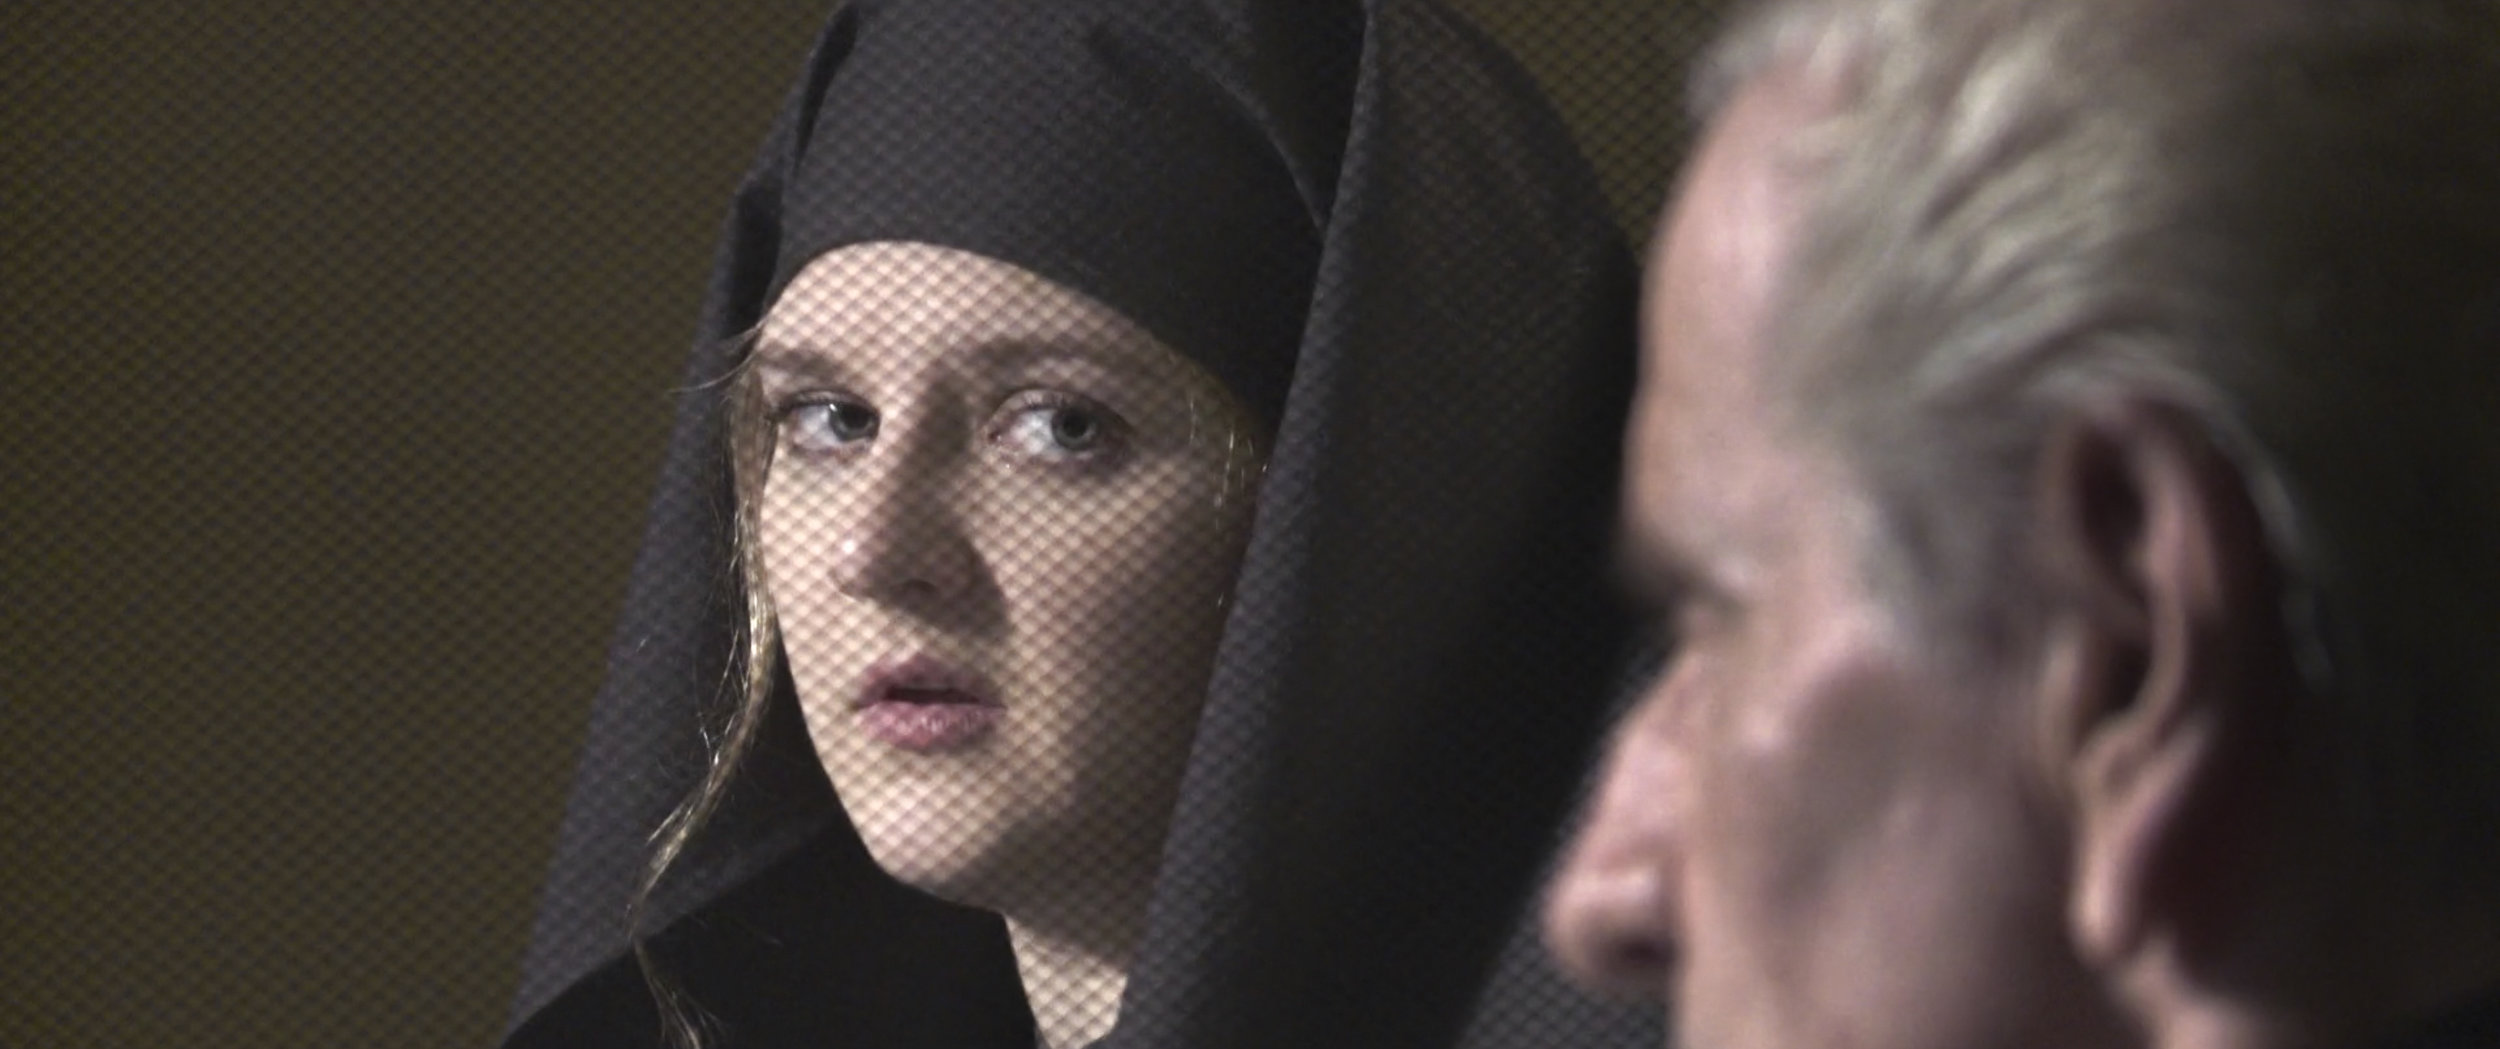 Nun Of It Still1.jpg